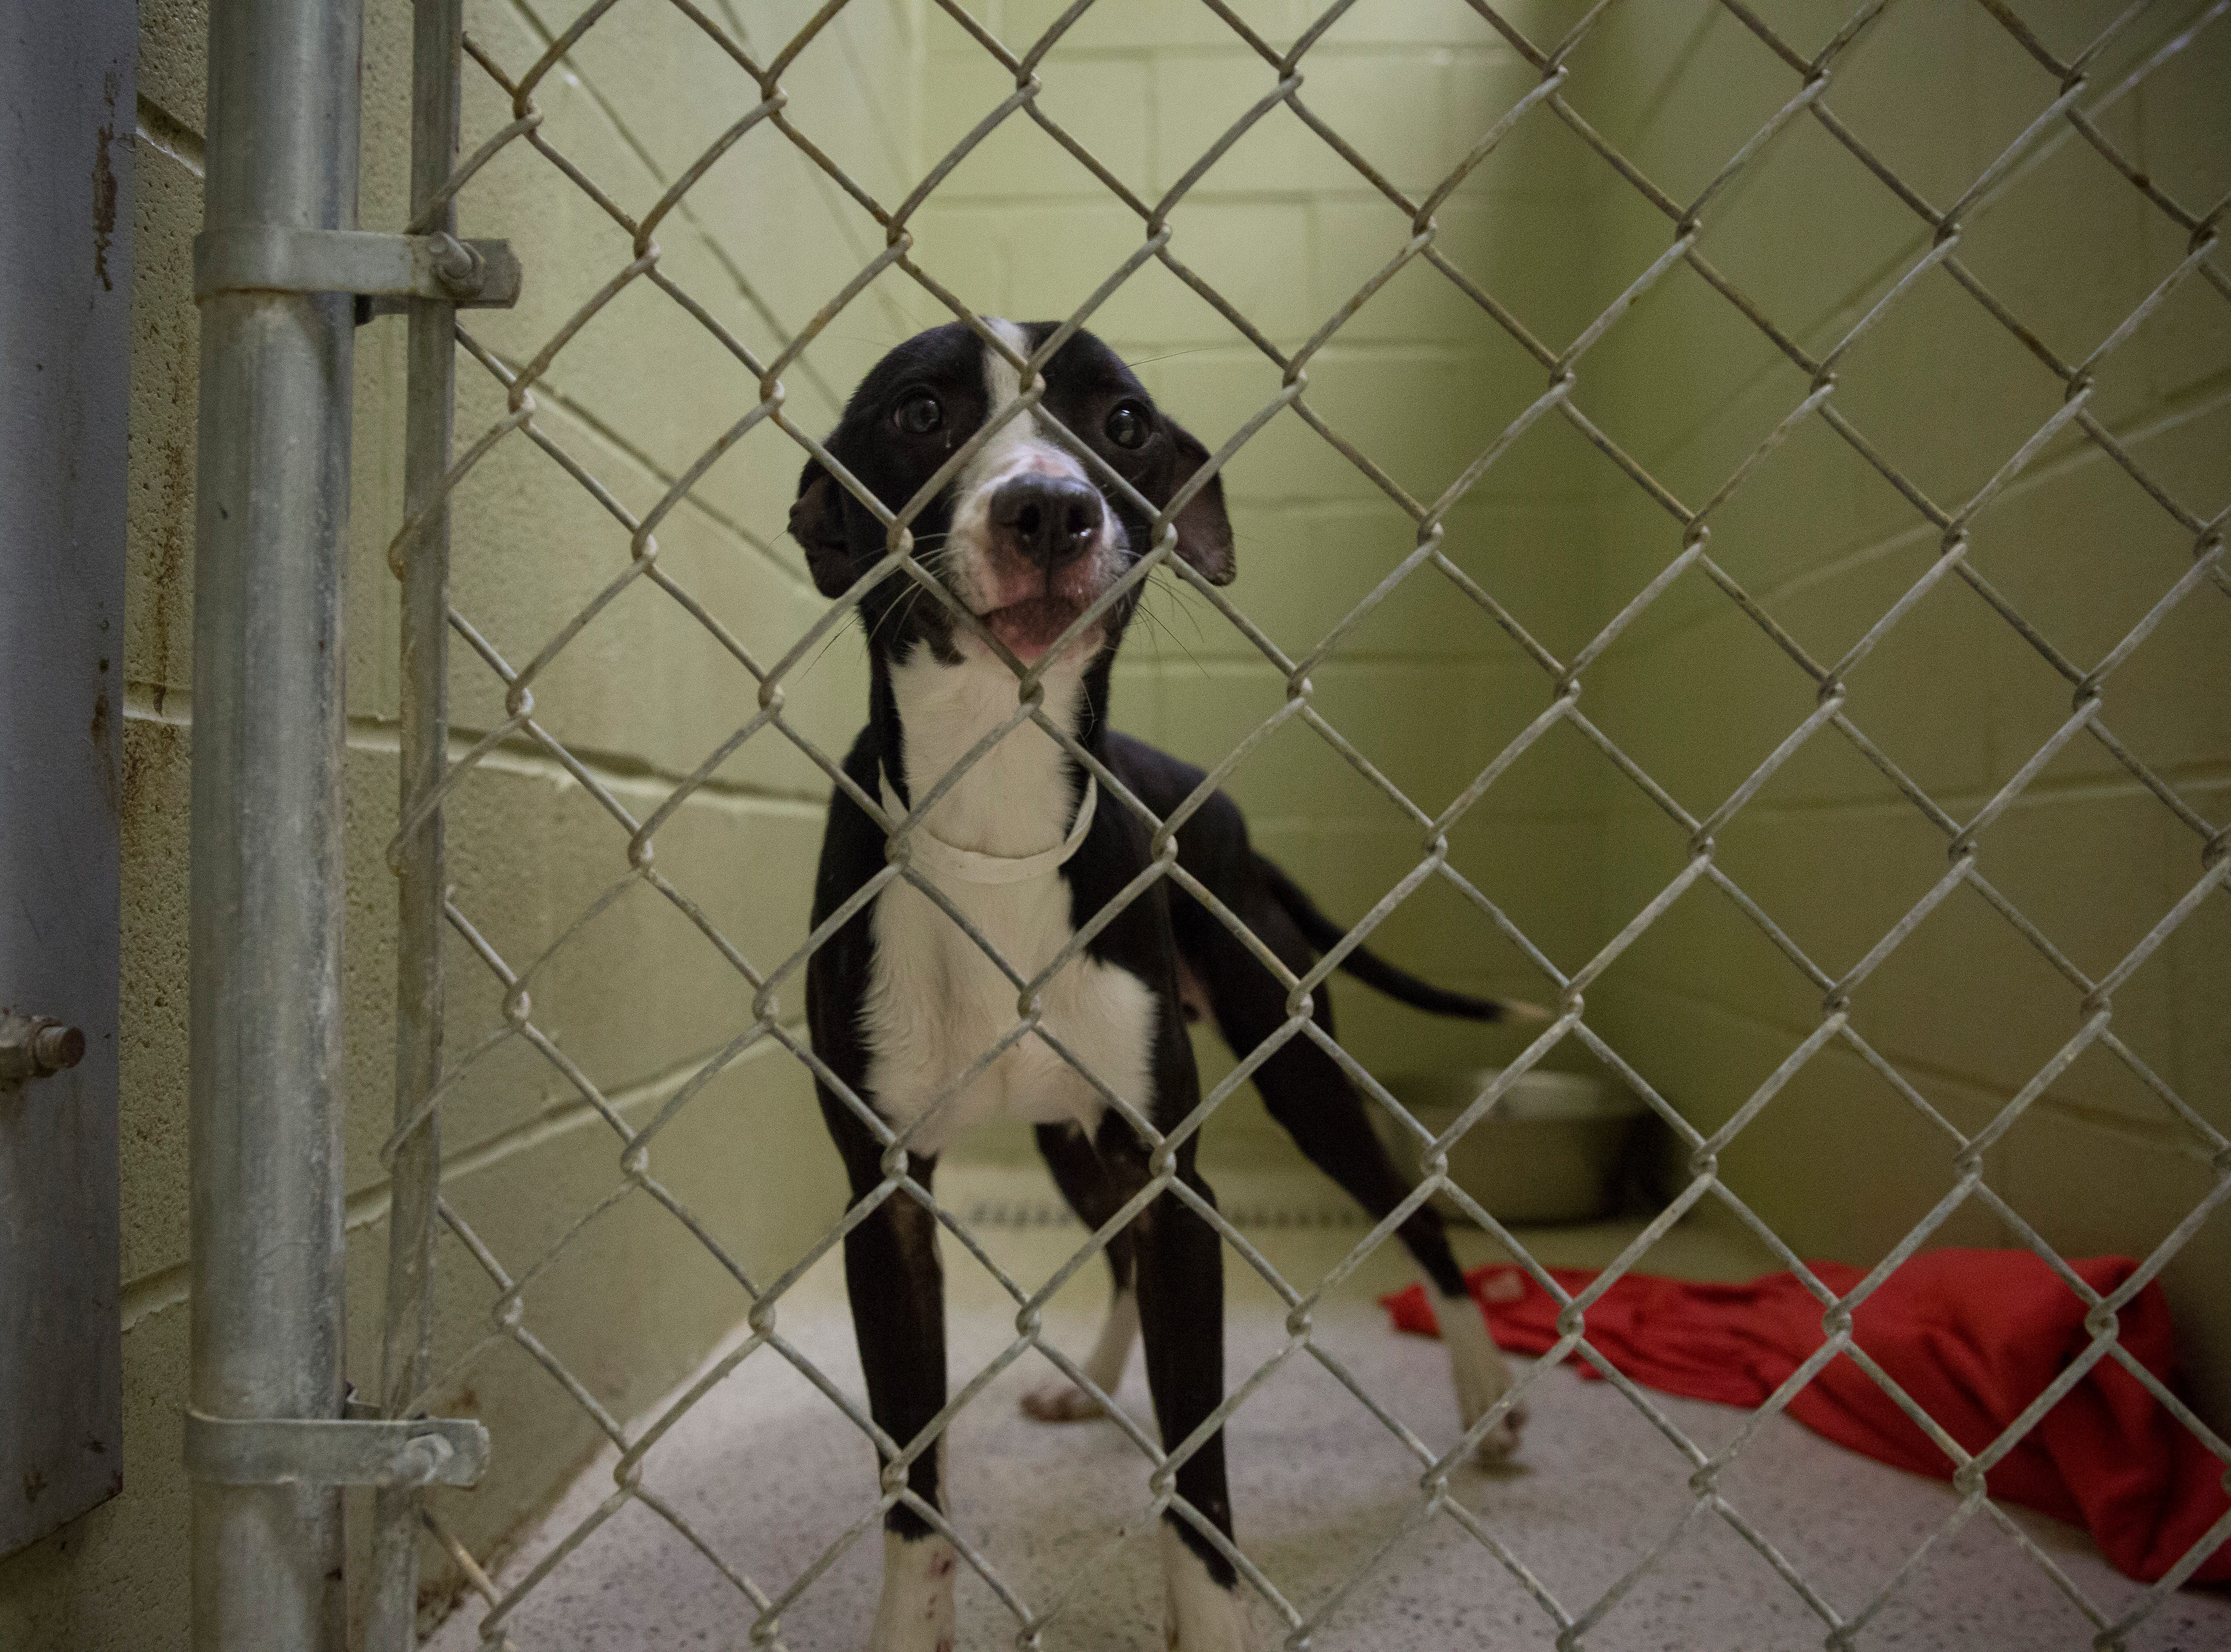 Only a few cats and dogs remain at the Muncie Animal Shelter on Tuesday. The shelter still has 12 dogs and 15 cats waiting for adoption.